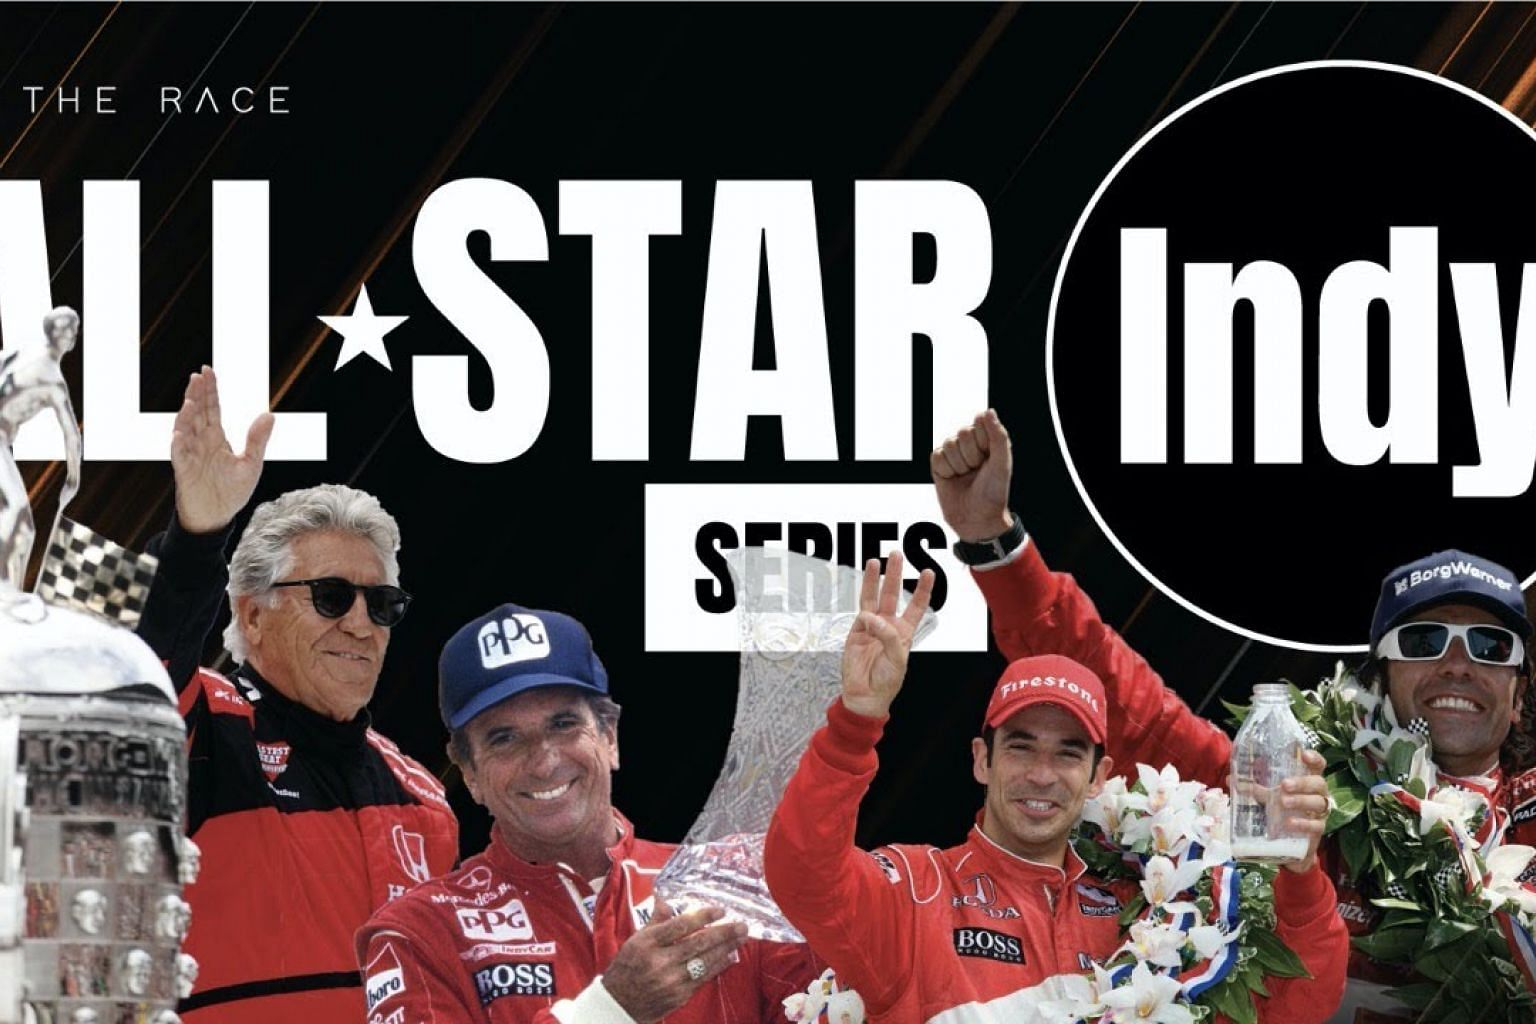 The Race All-Star Series - INDY! - ft. Fernando Alonso, JP Montoya, Button,  Andretti + LOADS more!